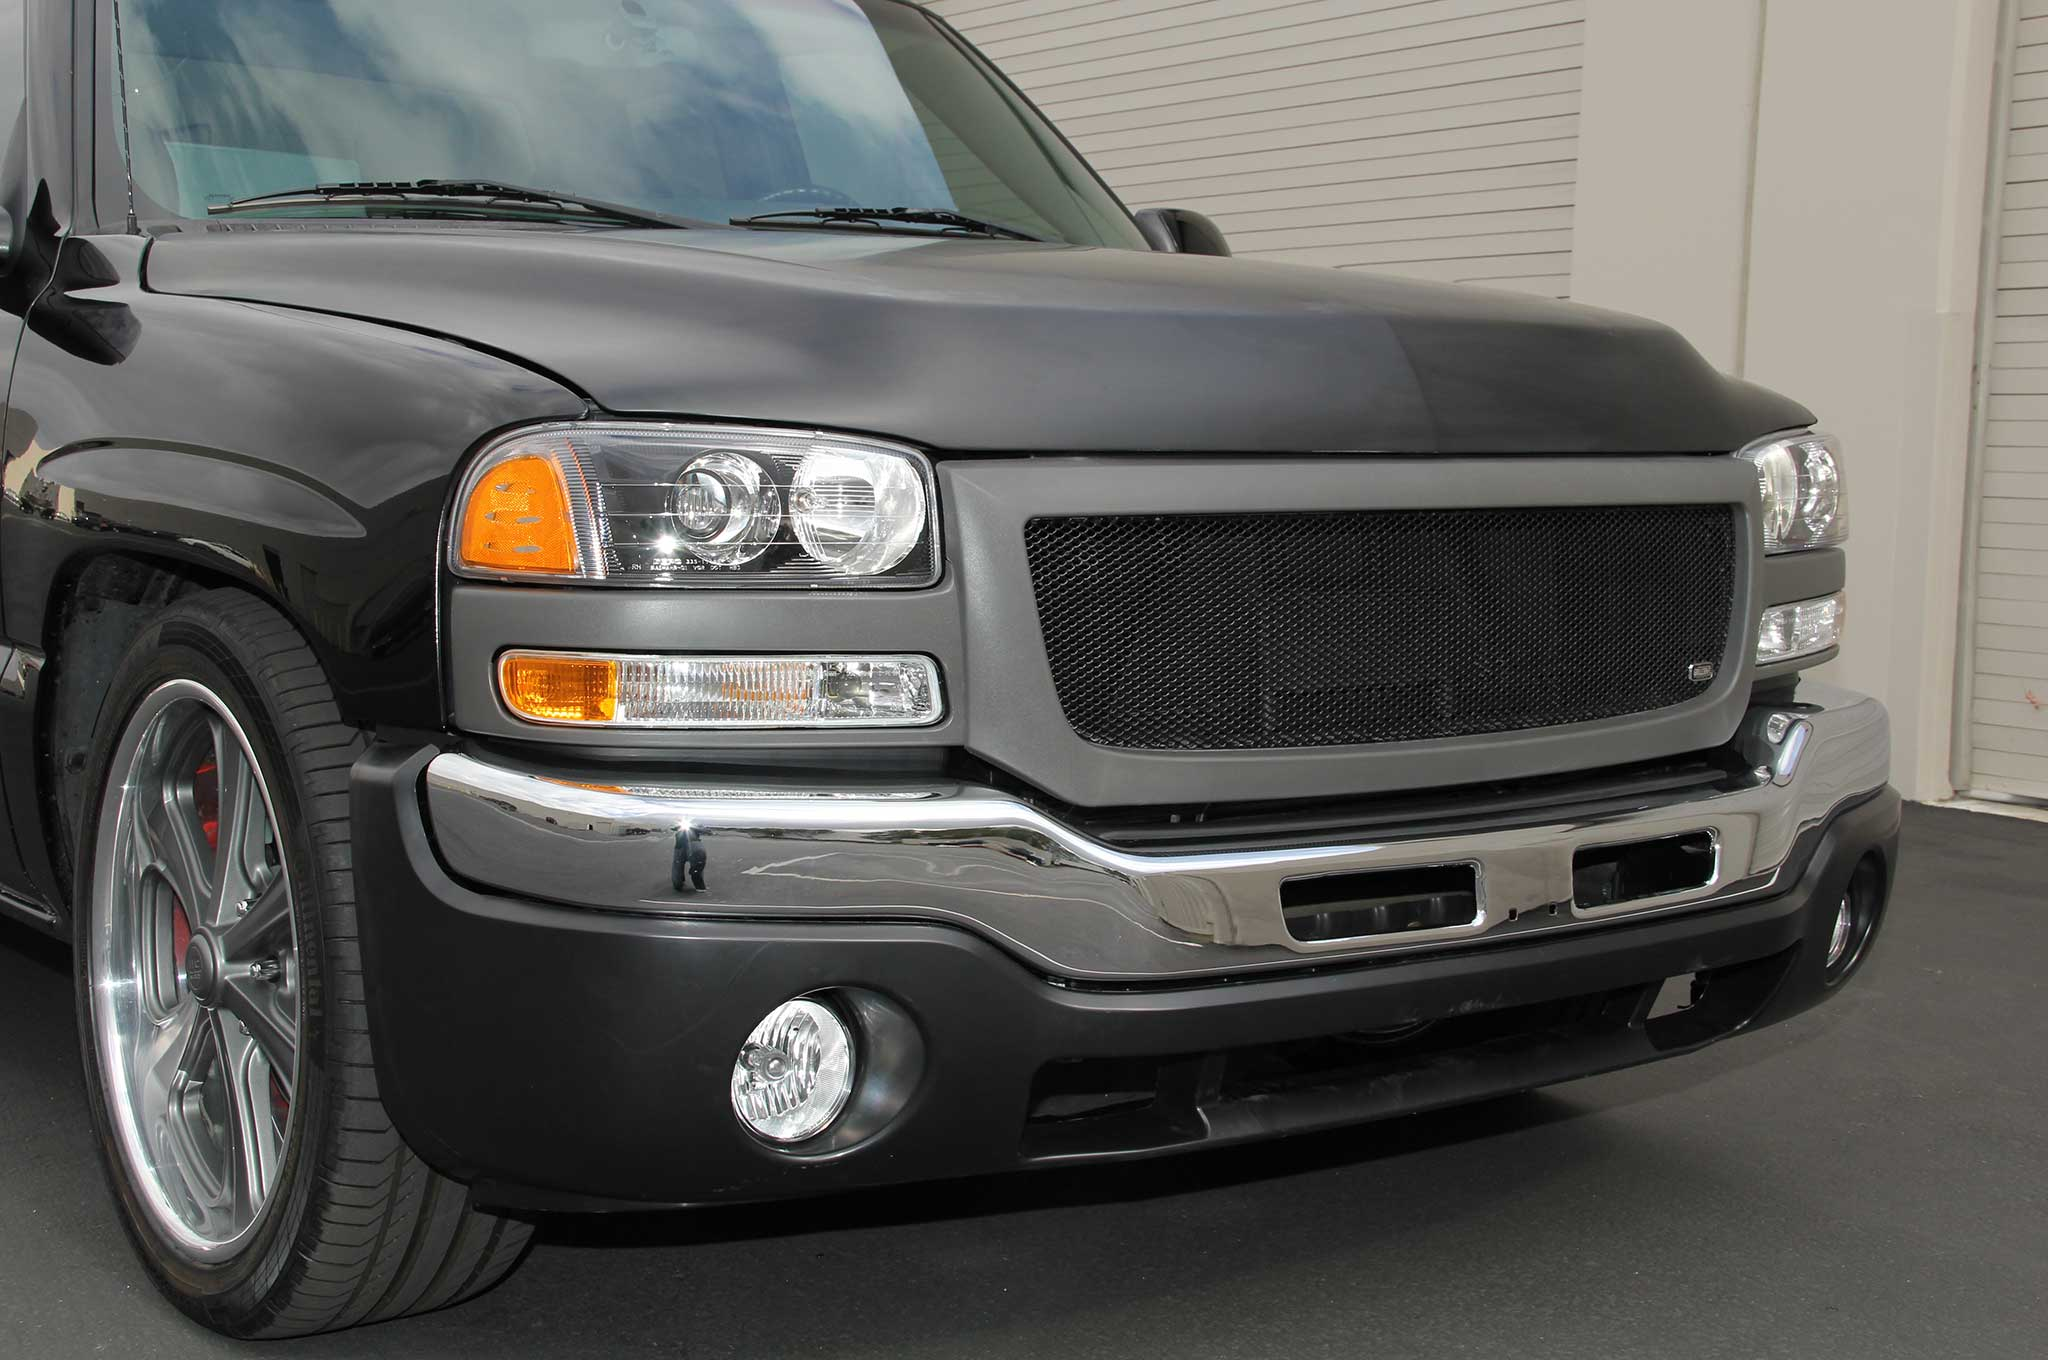 2002 gmc sierra front end update with lmc truck and grillcraft 2002 gmc sierra front end update with lmc truck and grillcraft